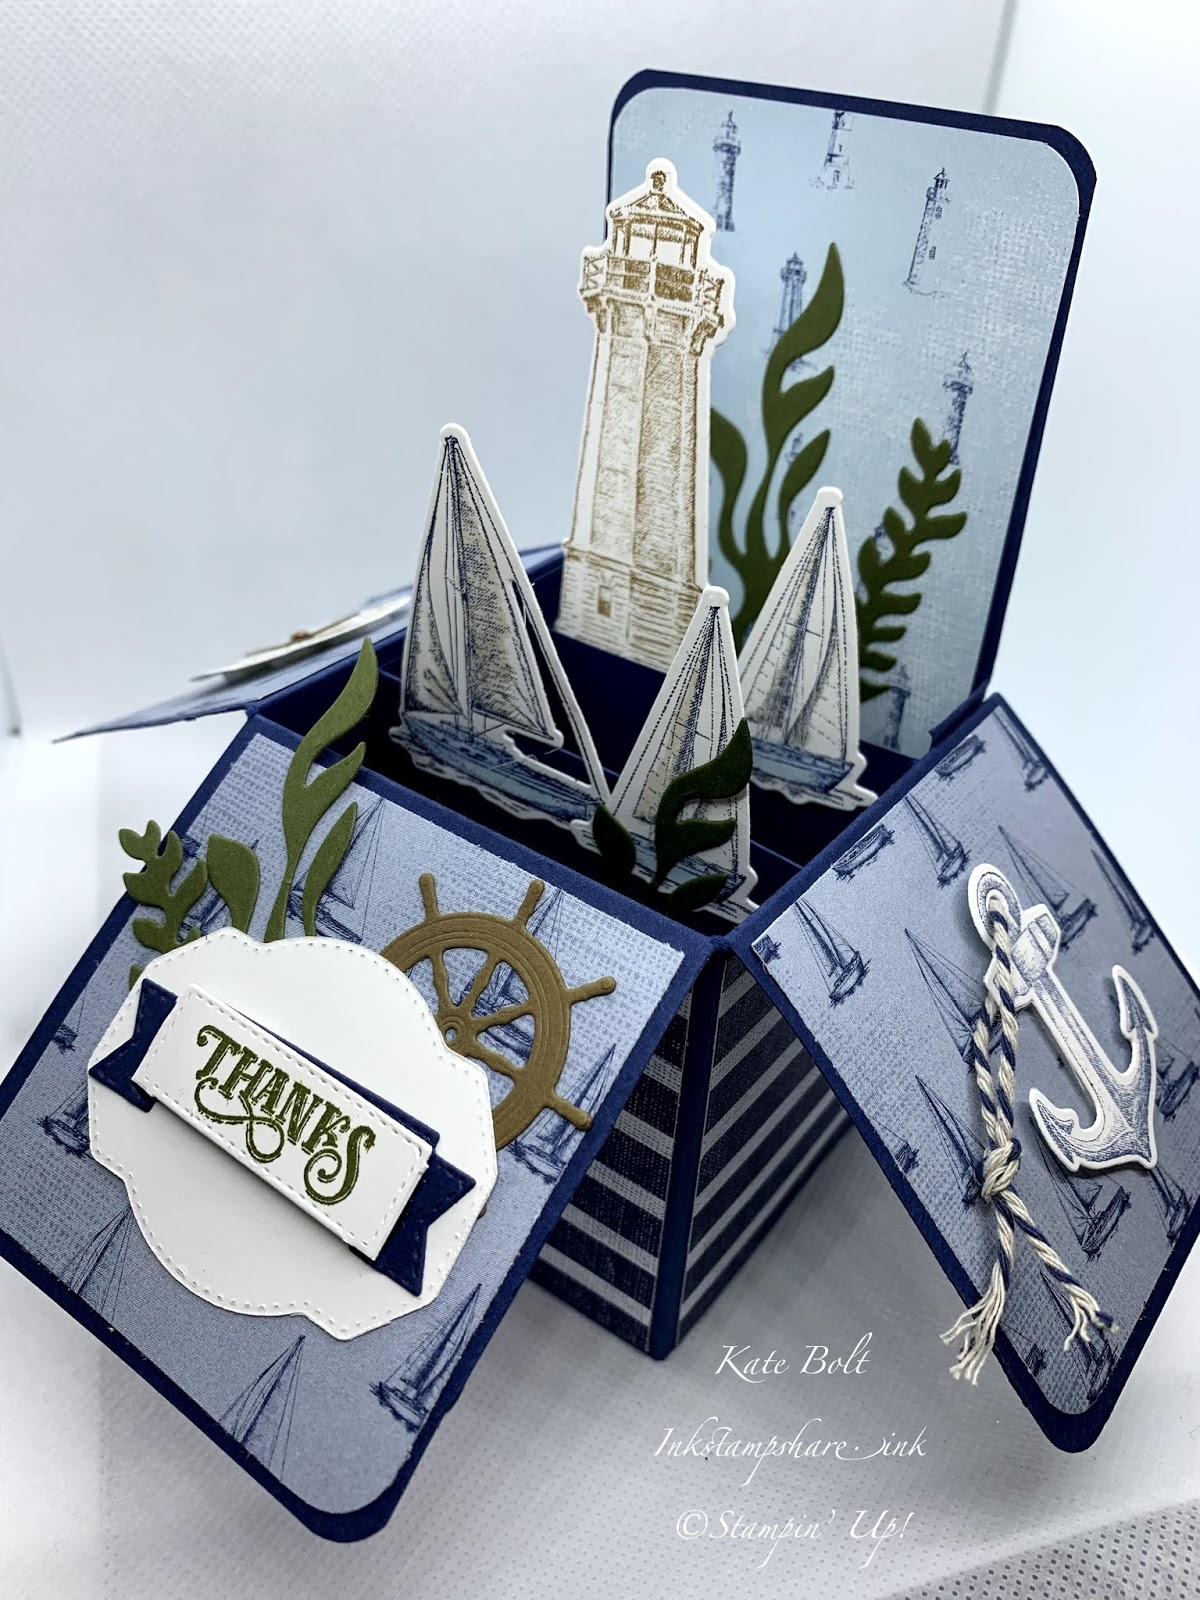 This is a card in a box with boats, light house, anchor, compass and seaweed, using the Lets Sail Away stamps, dies and paper from Stampin Up